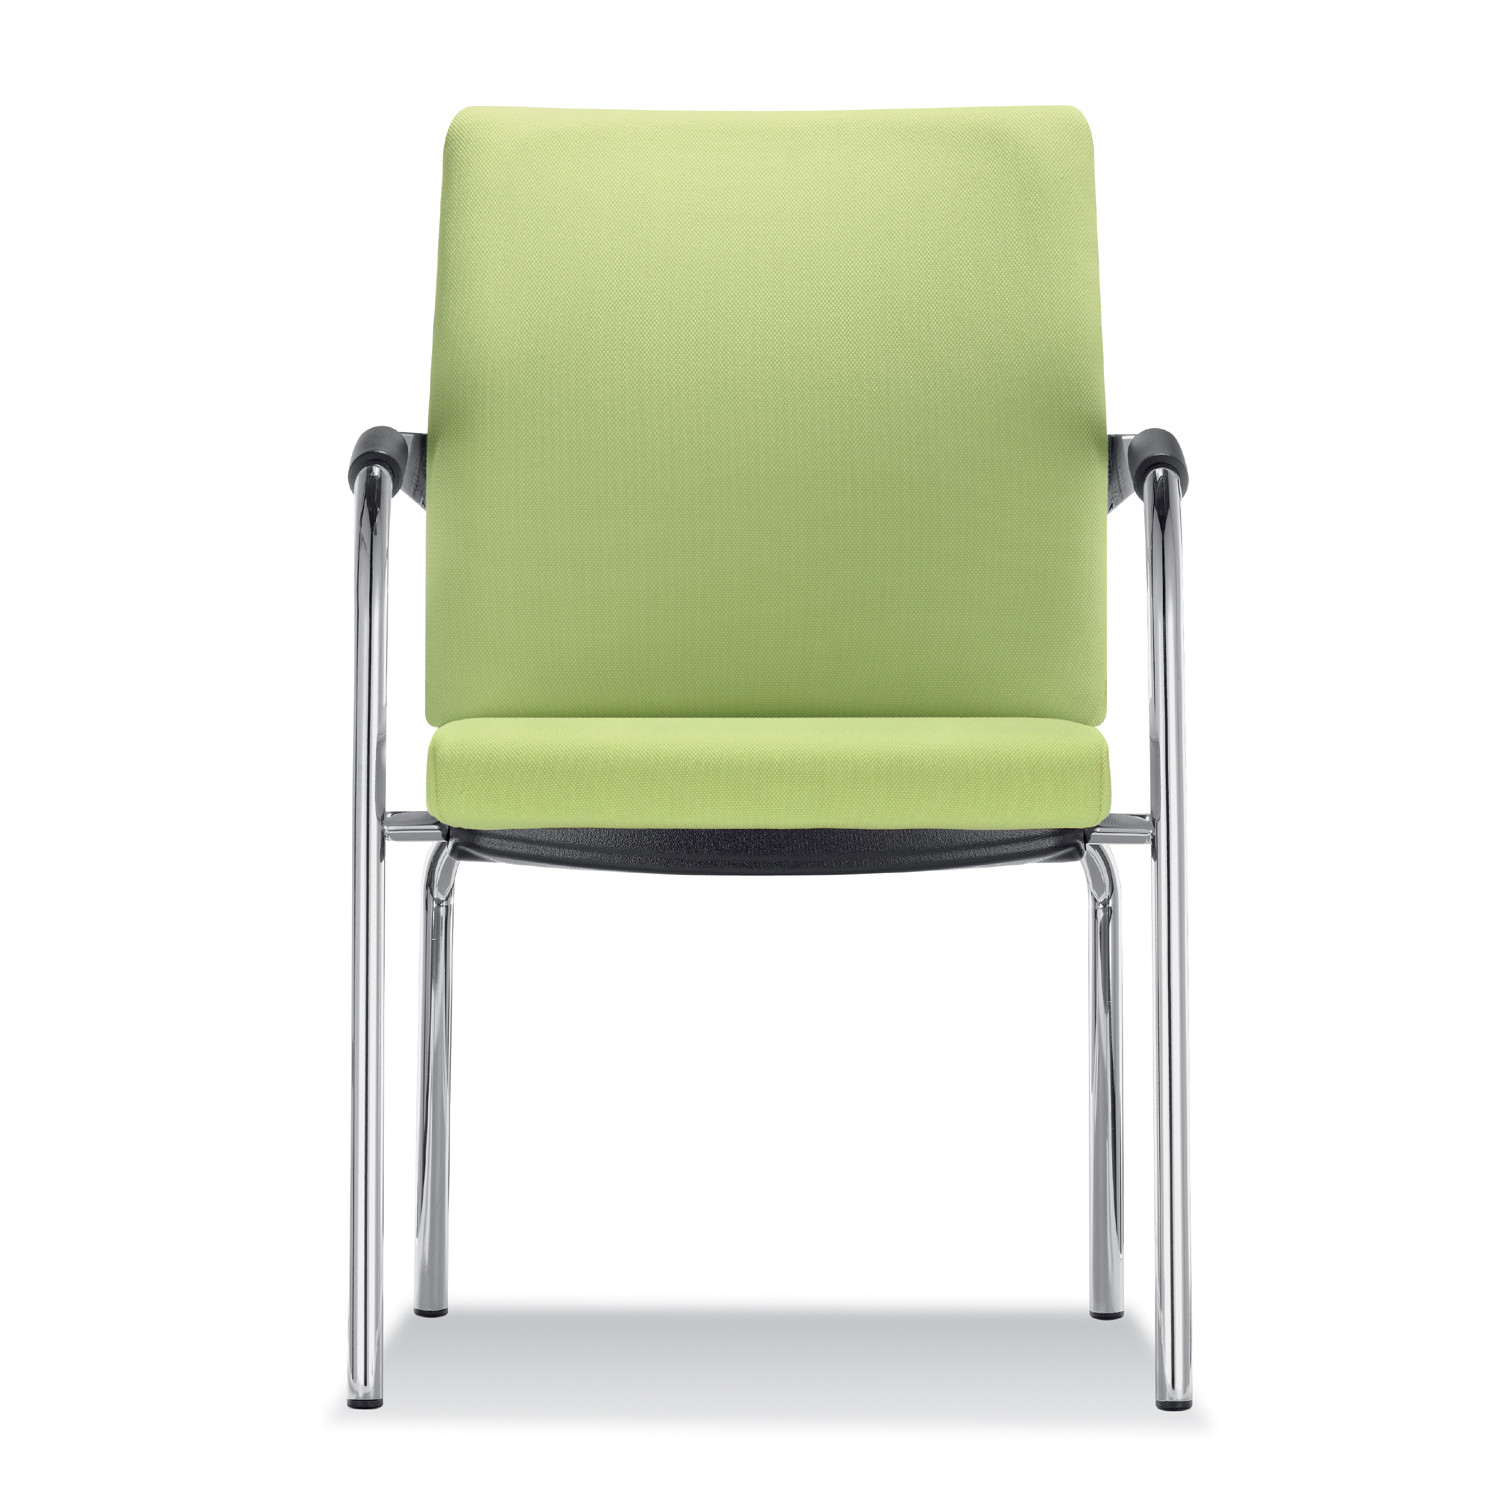 Teo 2 Soft Seating